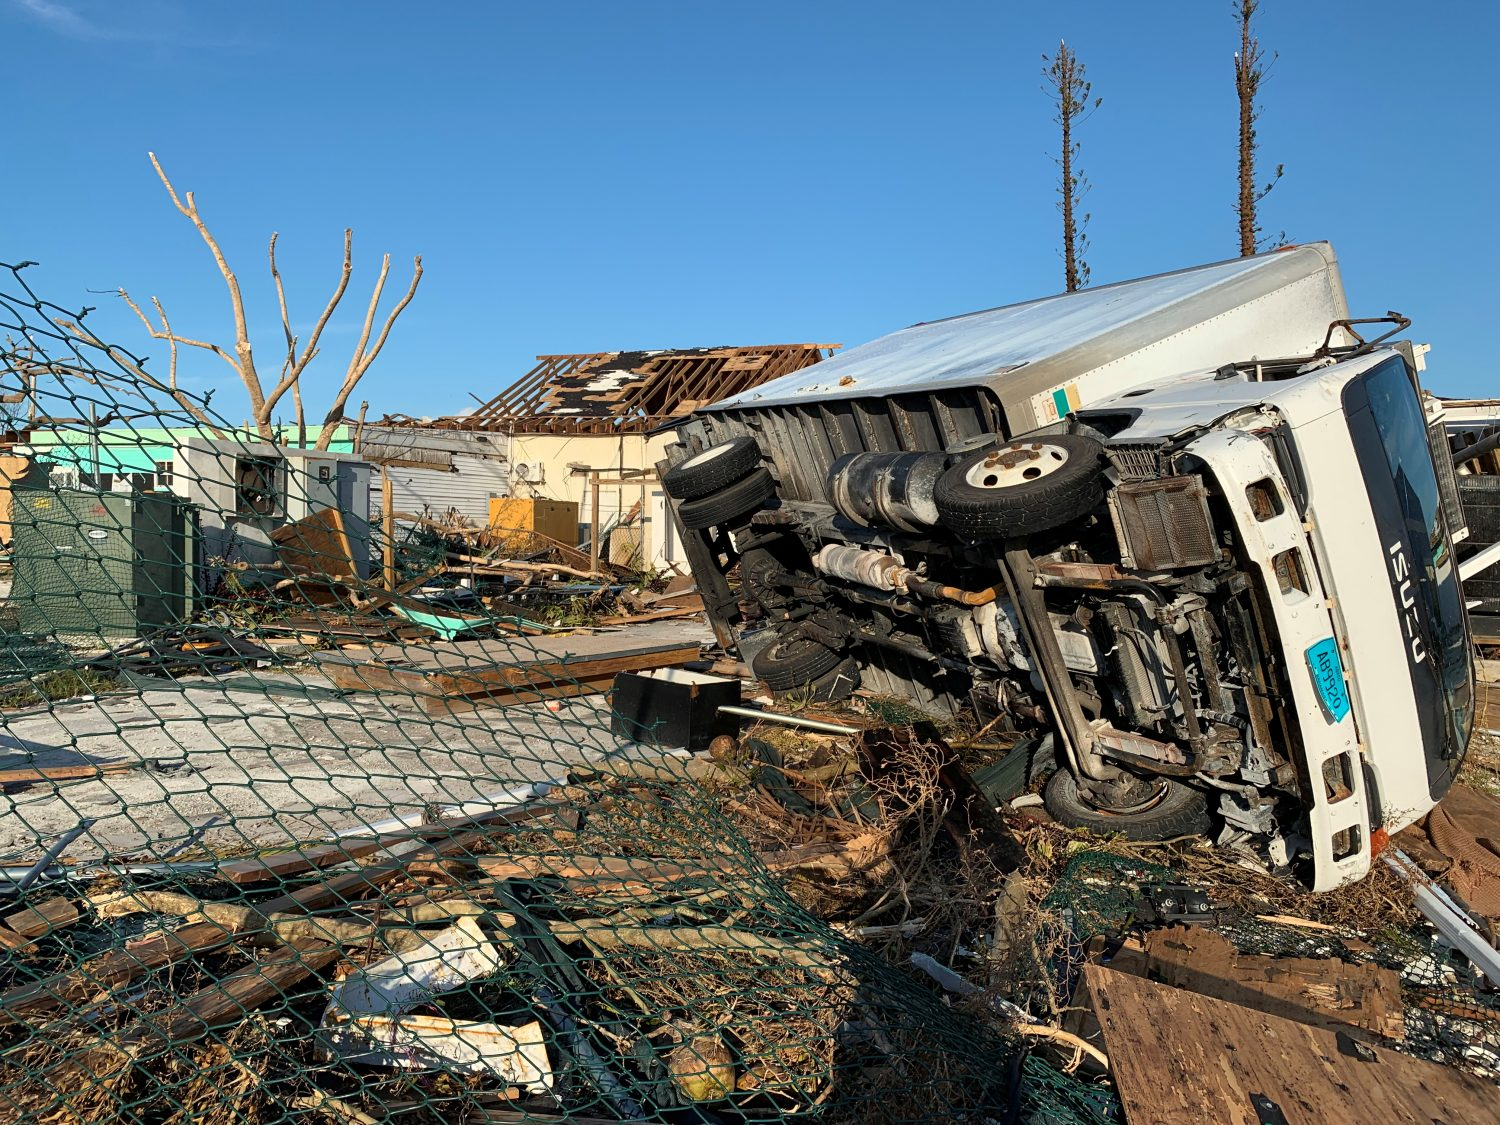 A truck sits on its side following landfall by Hurricane Dorian at an undisclosed location in the Bahamas in this International Federation of Red Cross and Red Crescent Societies photo released on September 6, 2019. Courtesy International Federation of Red Cross and Red Crescent Societies/Handout via REUTERS